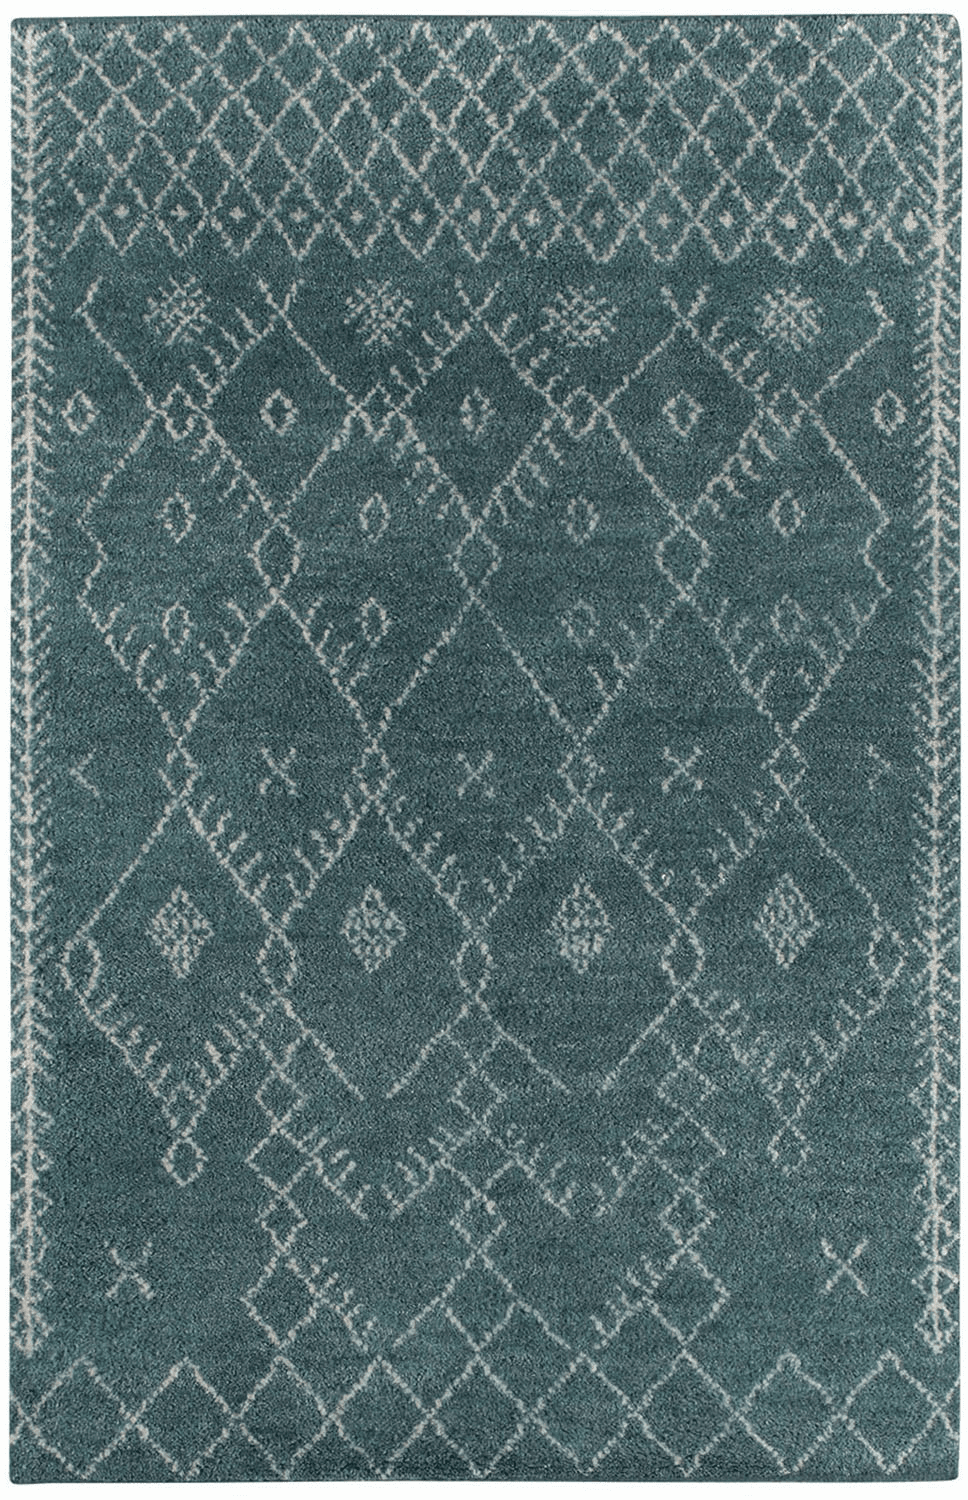 Hand Knotted Spa Rug